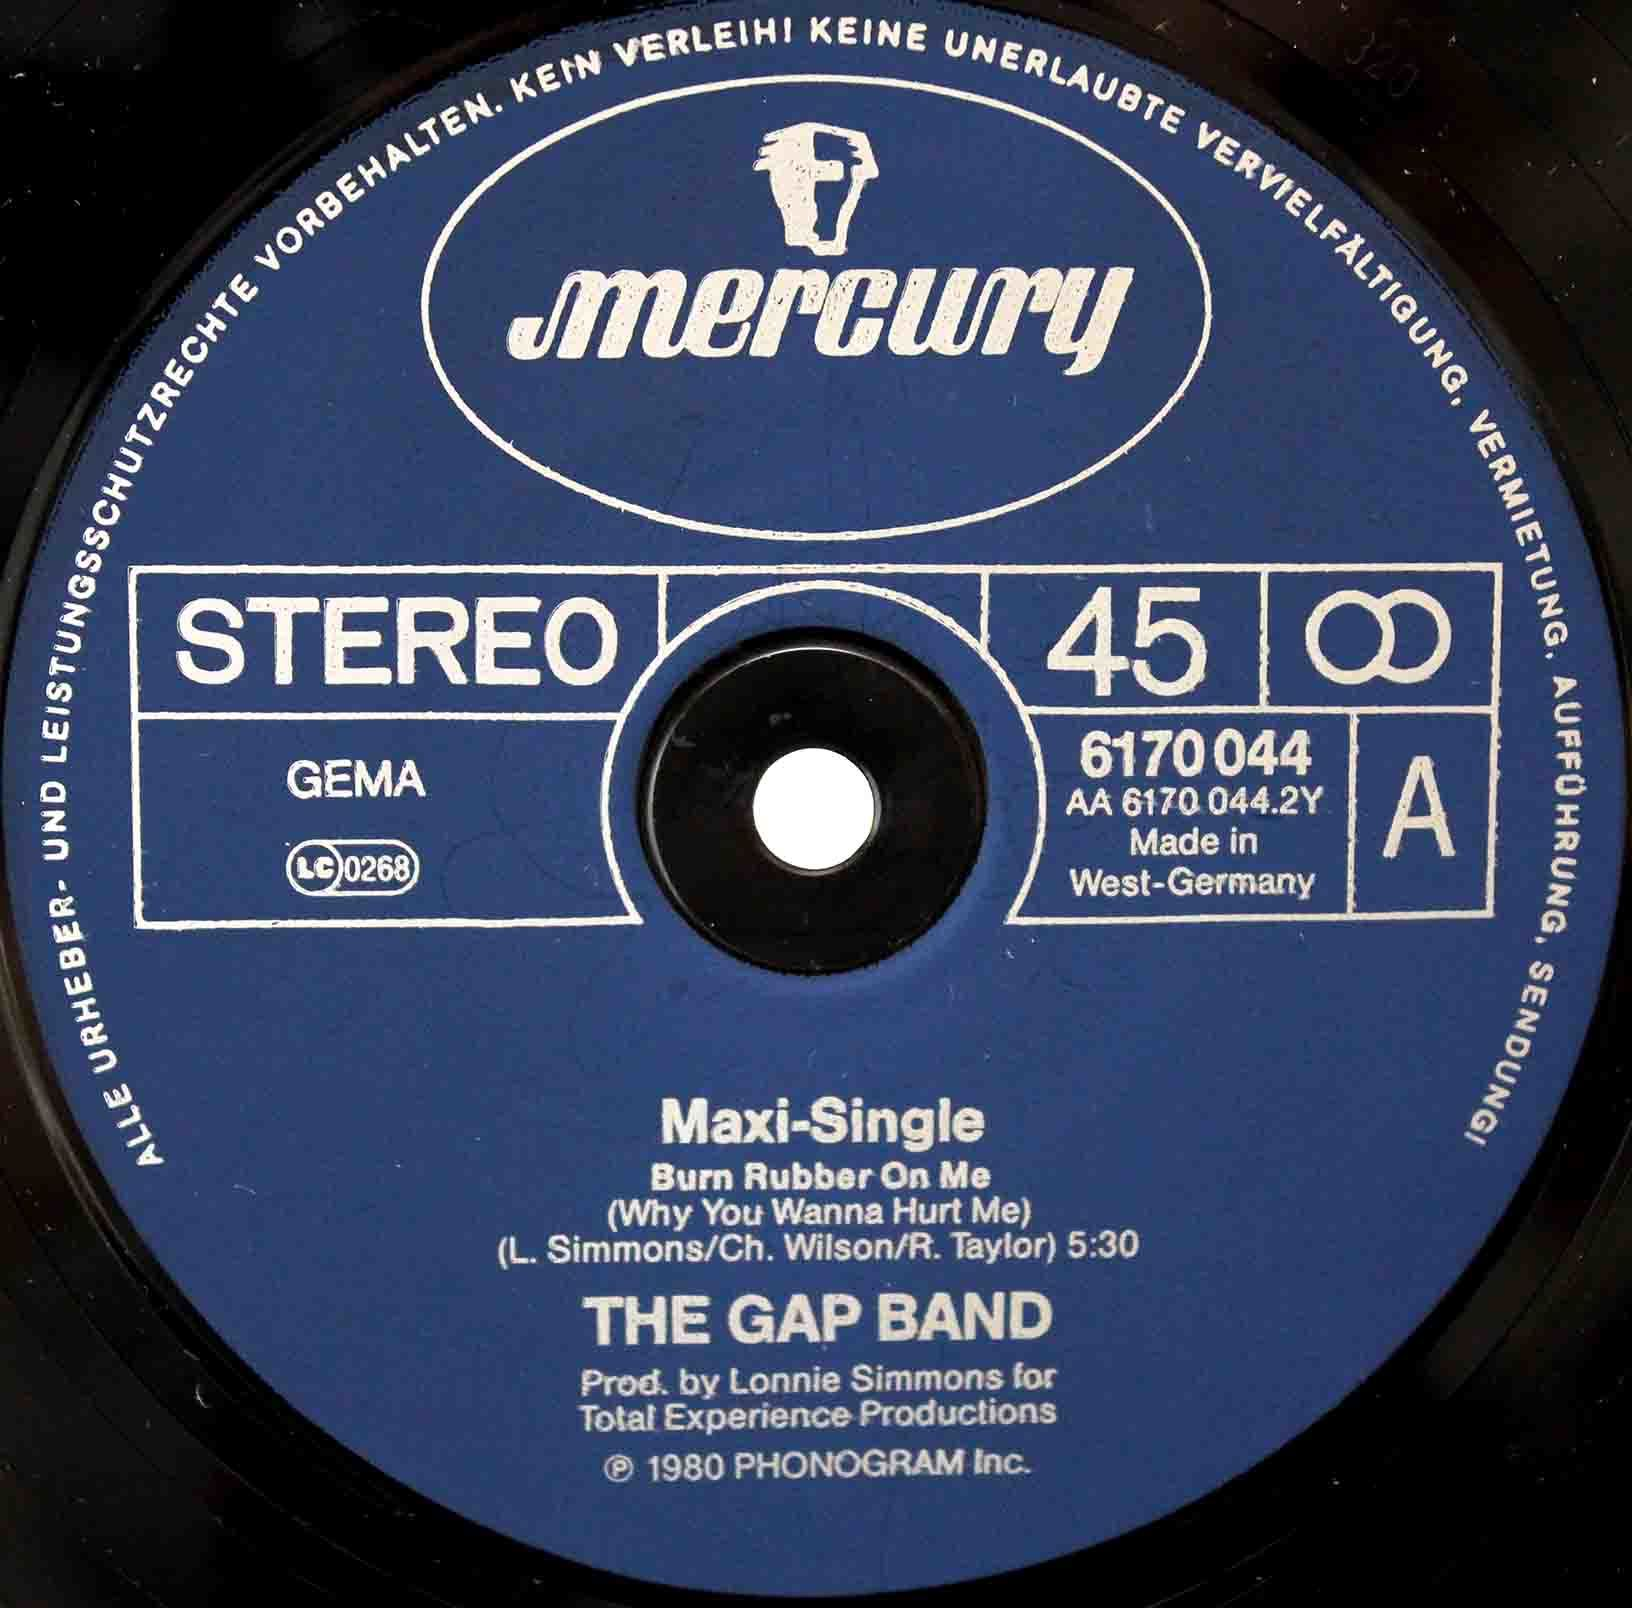 Gap Band - Burn Rubber On Me 02